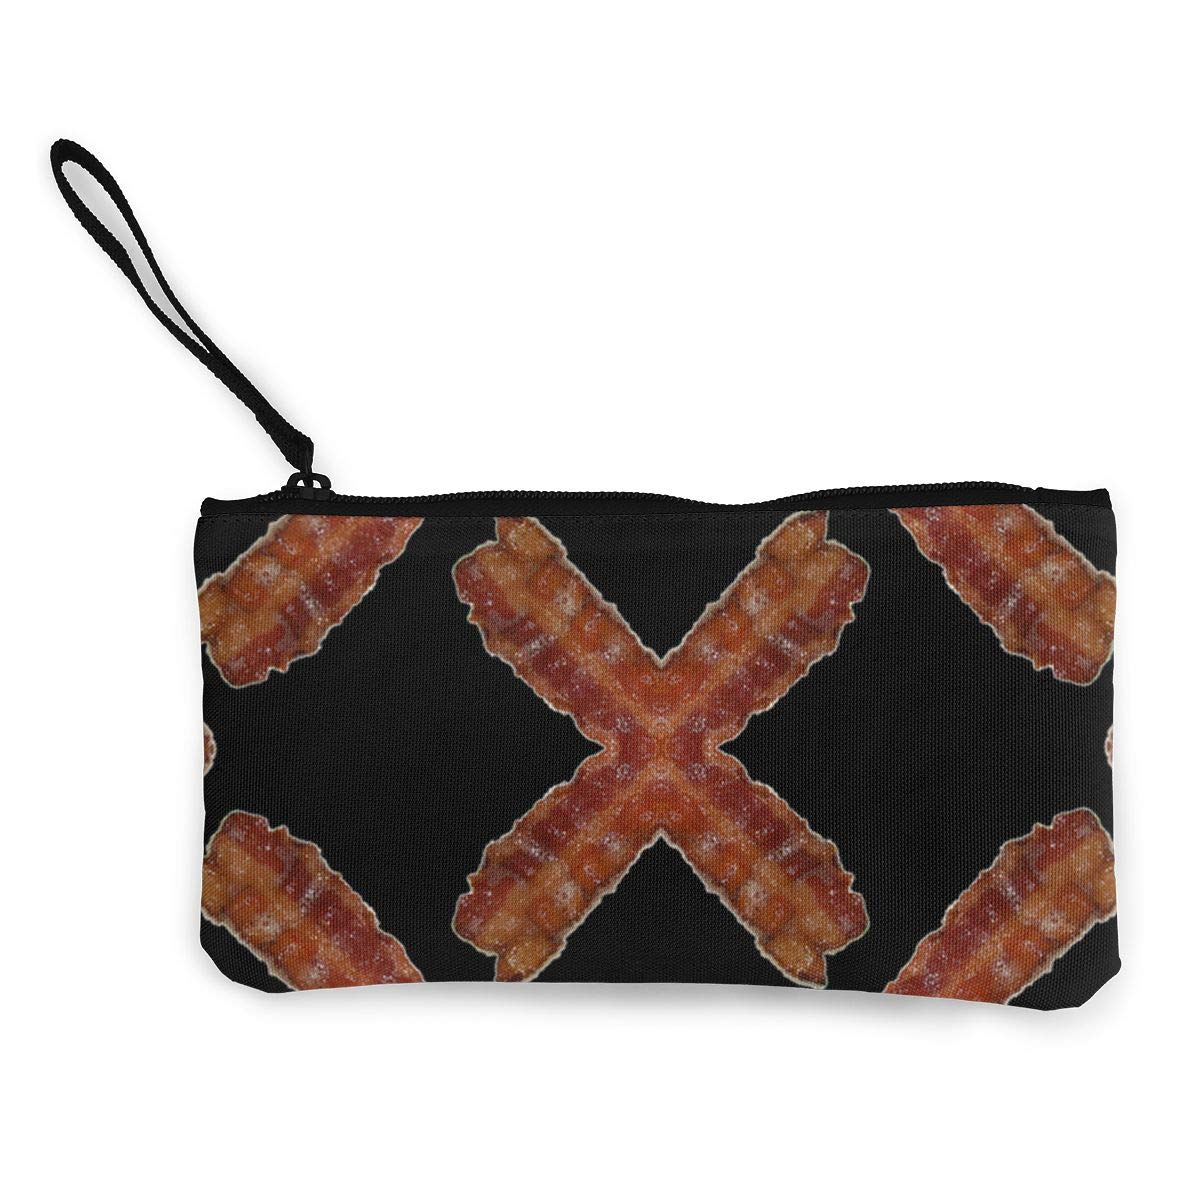 Cellphone Bag With Handle DH14hjsdDEE Bacon zipper canvas coin purse wallet Make Up Bag